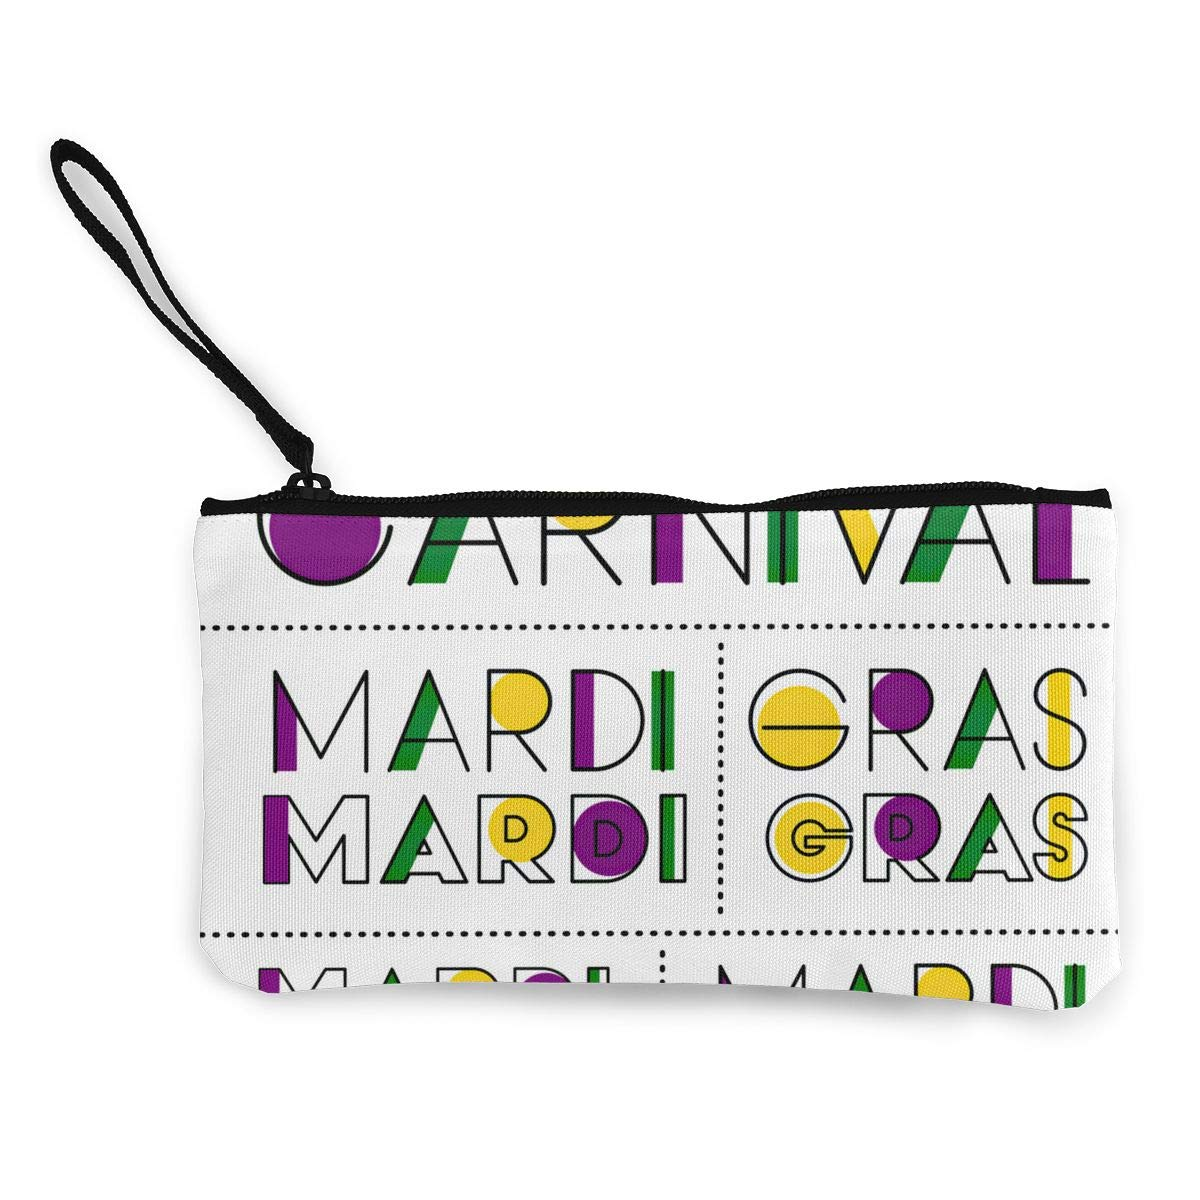 Maple Memories Mardi Gras Carnival Portable Canvas Coin Purse Change Purse Pouch Mini Wallet Gifts For Women Girls